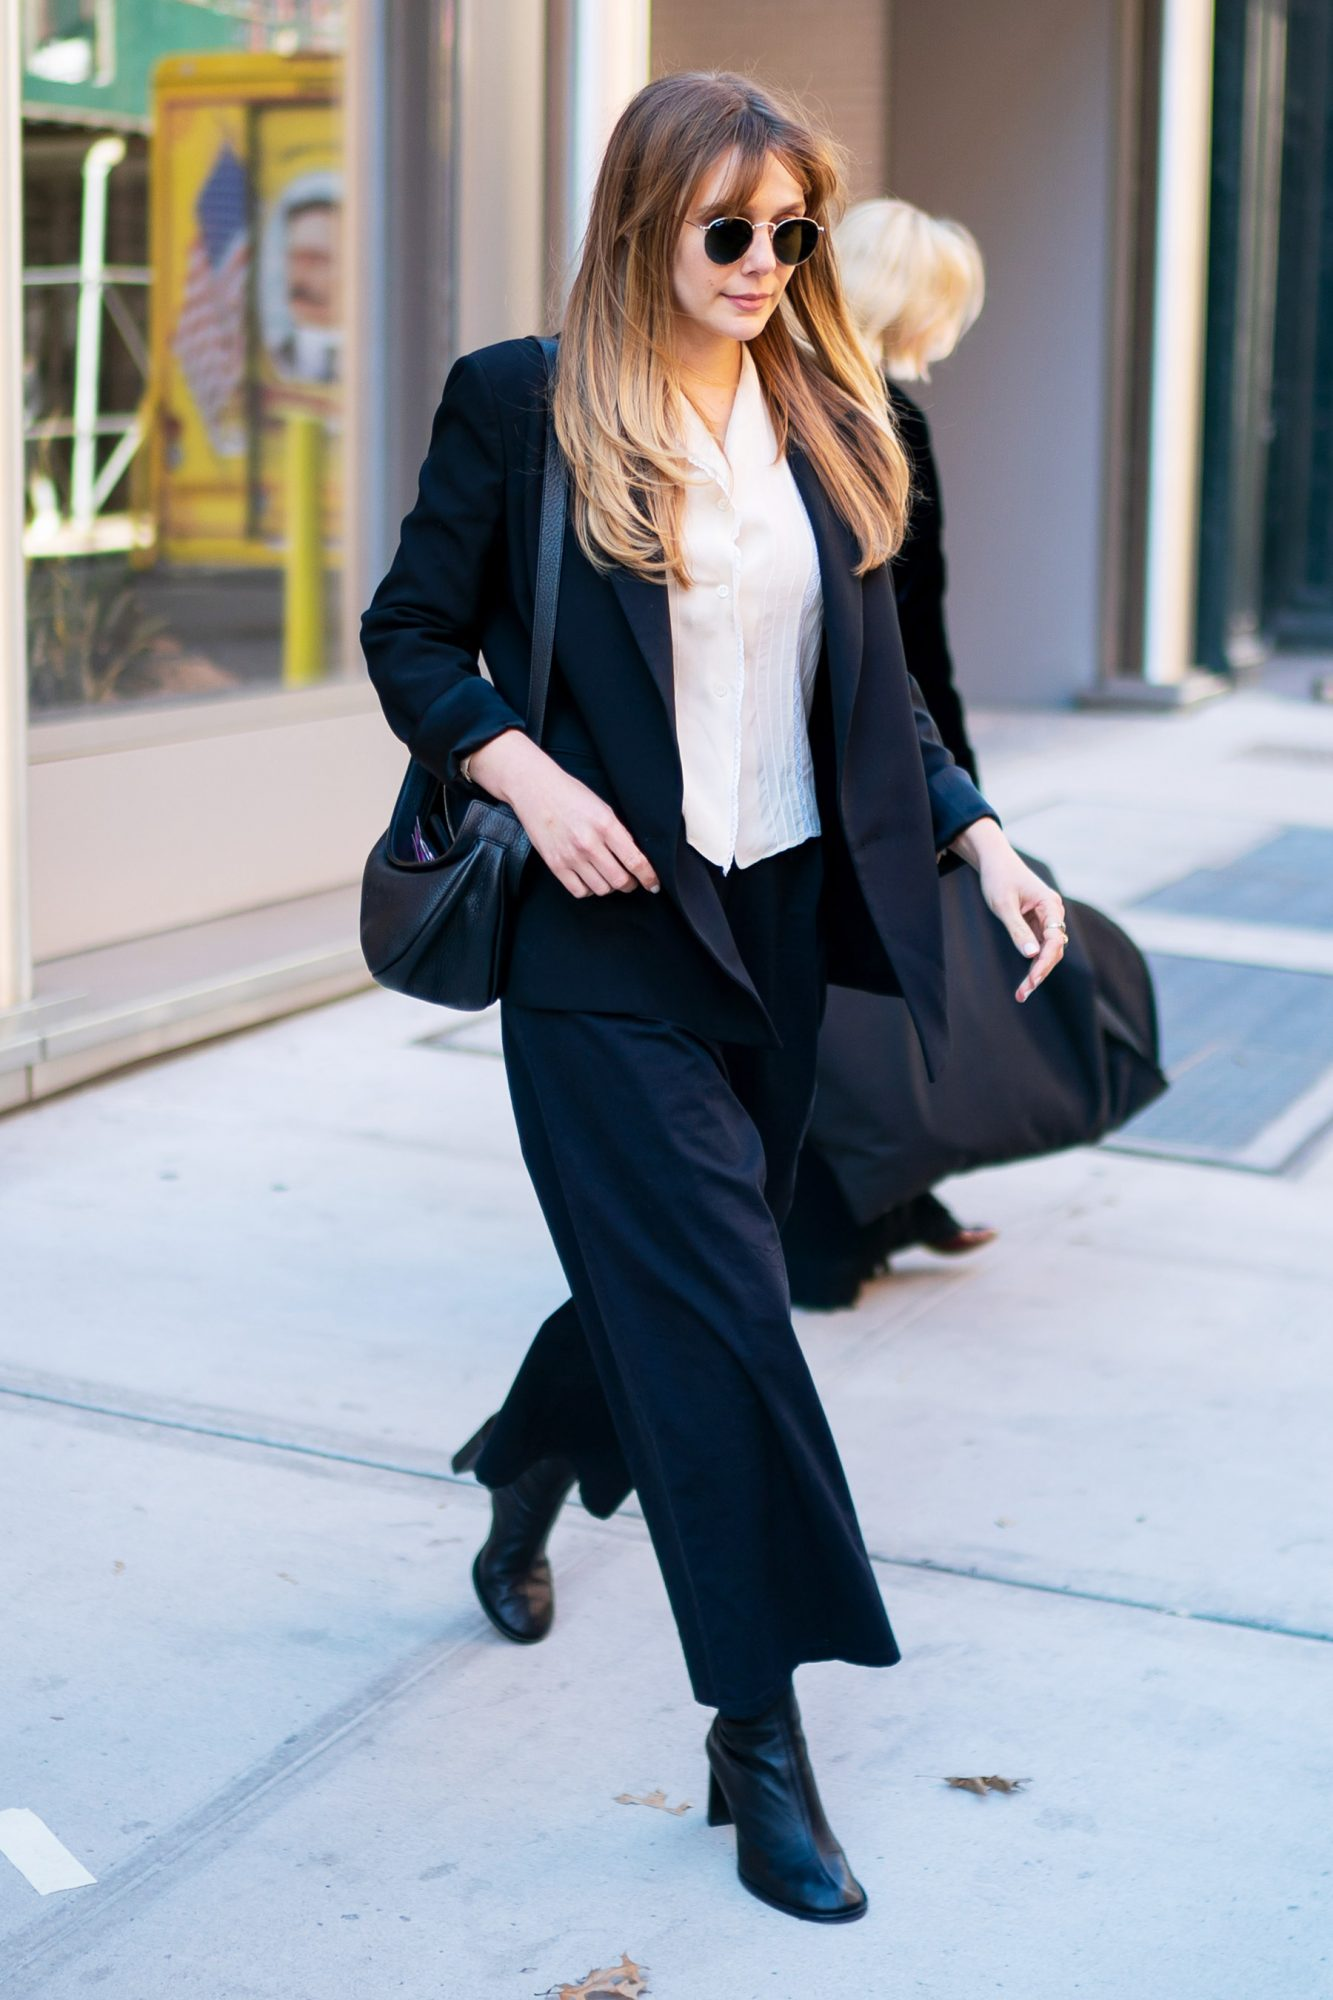 EXCLUSIVE: Elizabeth Olsen Leaves #ConfidentBeauty By Bobbi Brown Lunch In New York City